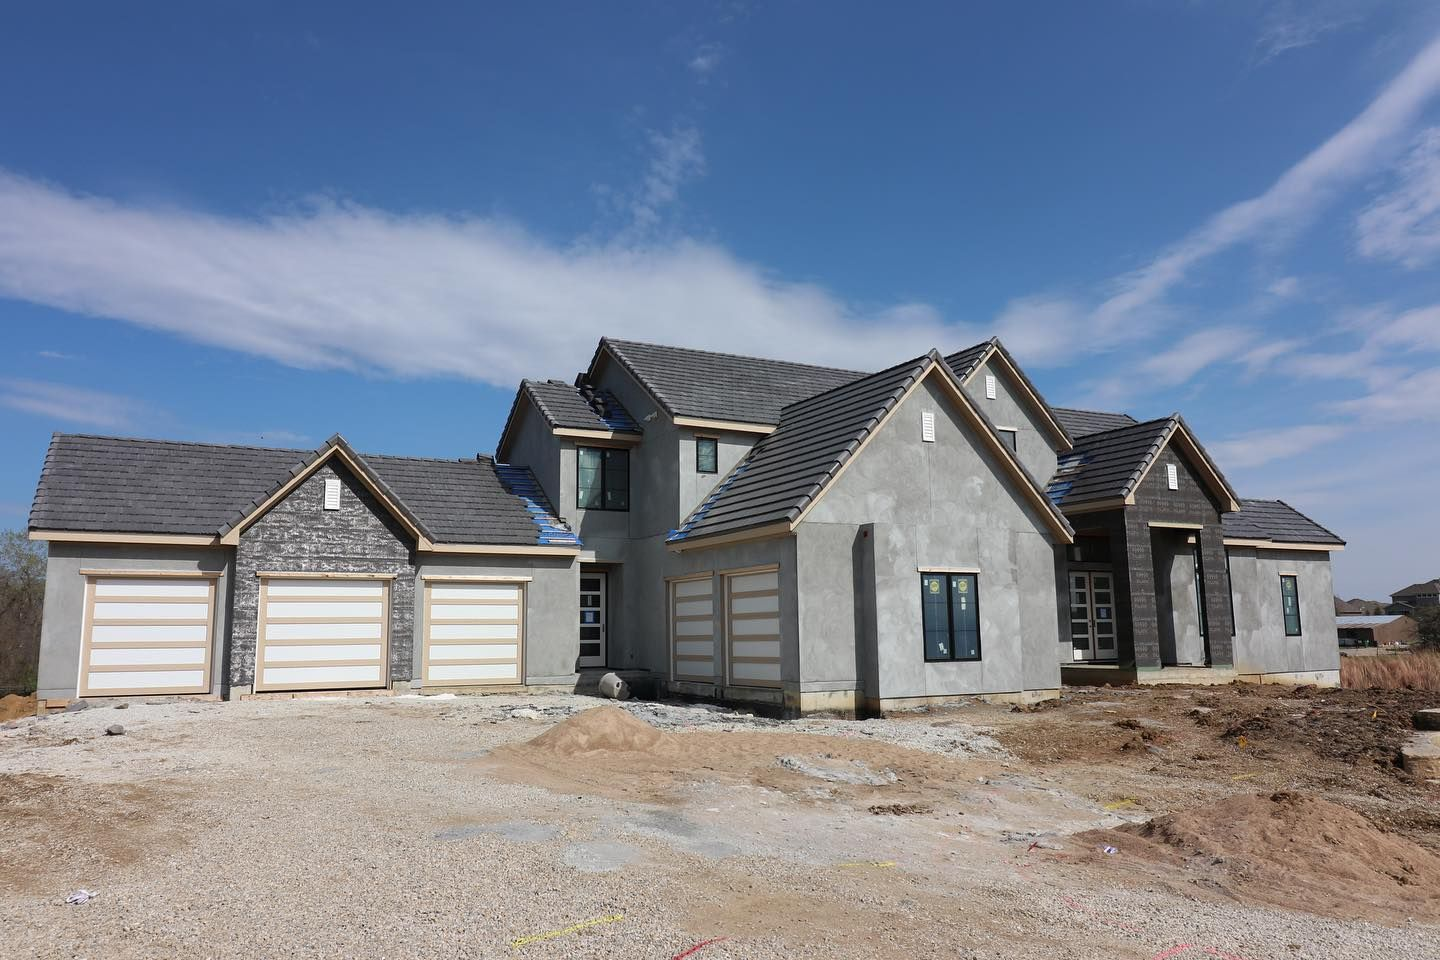 One Step Closer At Lot 46 In The Farm At Garnet Hill Quinnkc Quinnrealestate Quinndevelo In 2020 Overland Park Ks Real Estate Custom Home Builders